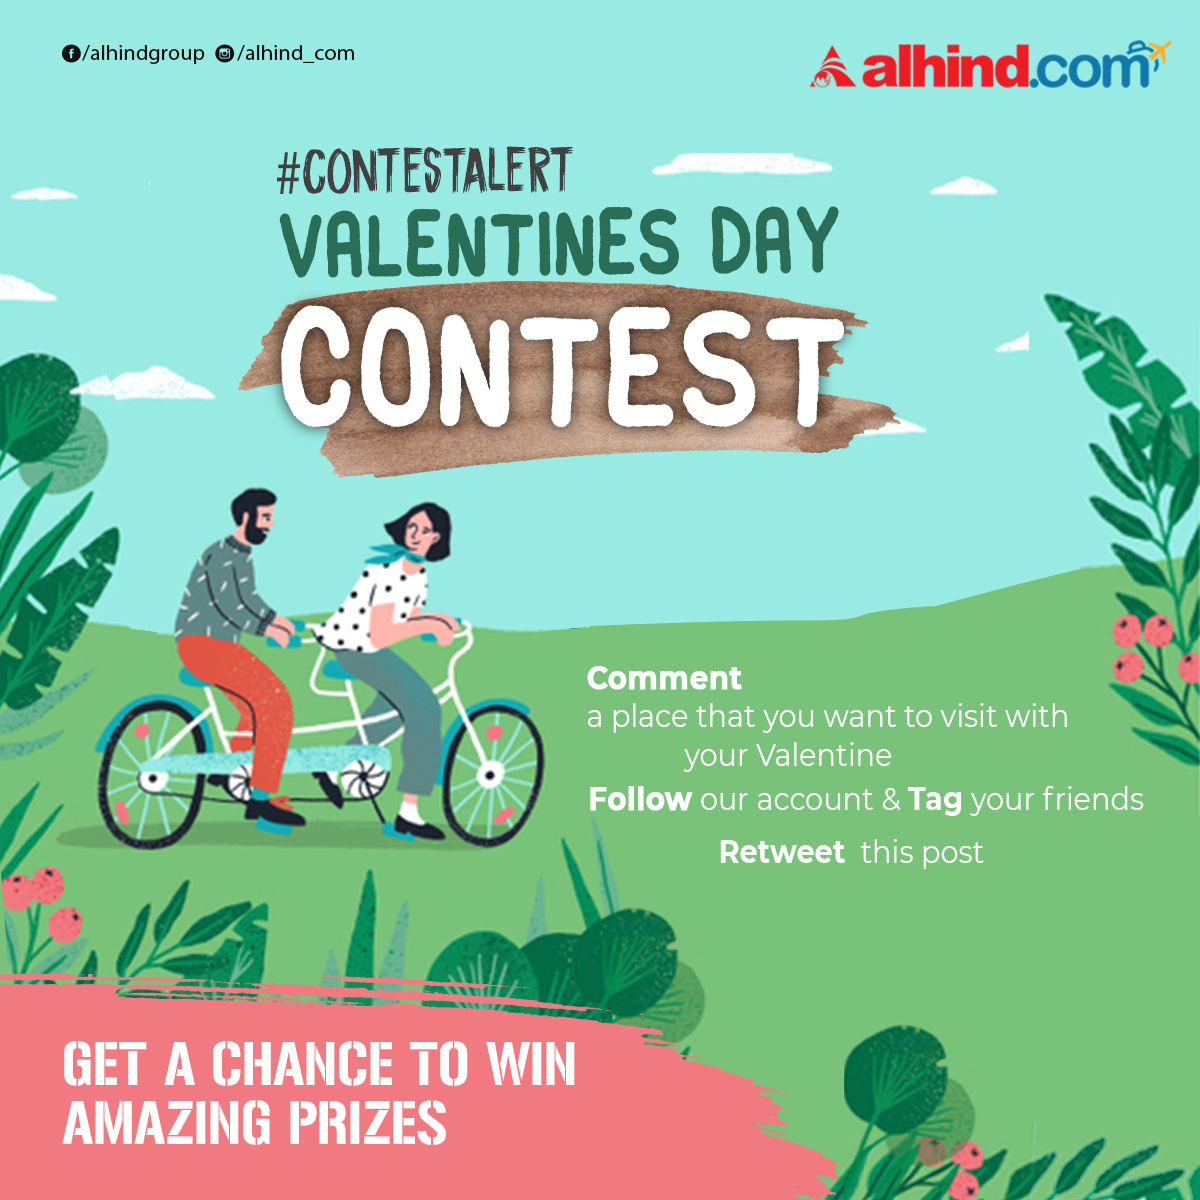 Participate our #ValentinesDayContest and get prizes  Retweet this post and Comment a place that you want to visit with your valentine. follow this account and tag your friends.   T&C: http://bit.ly/2Sf1U1W #contest #ContestAlert #TravelContest #ValentinesDayContest #alhind